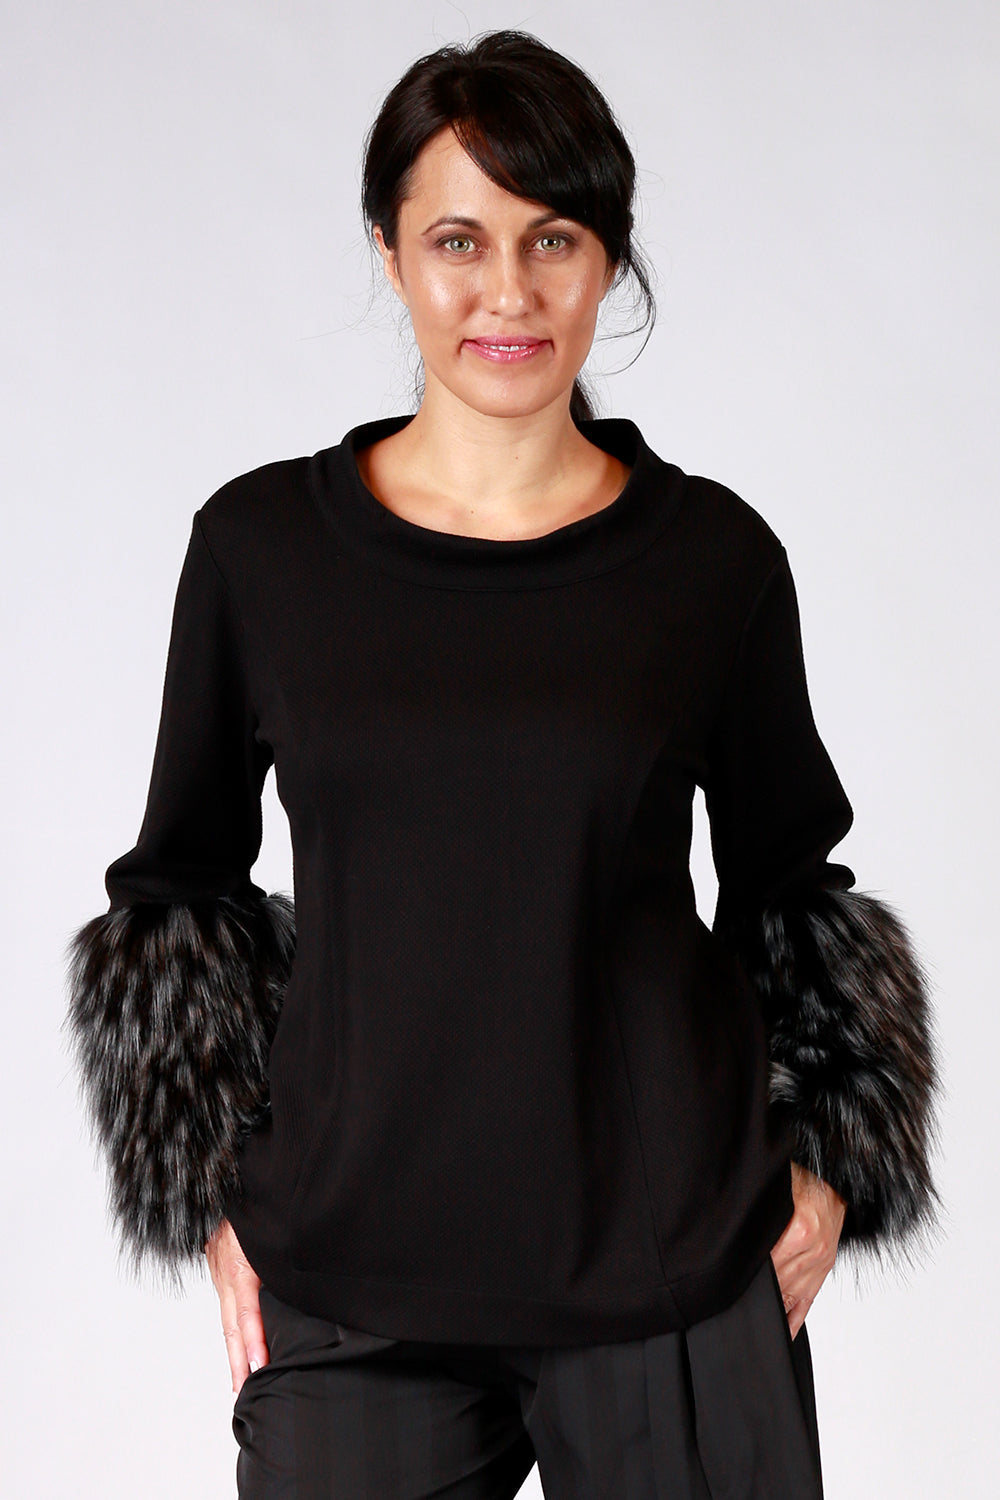 Baby It's Cold Top | Gypsy Fare AW20 | Annah Stretton | Annah Stretton Fashion | Designer Fashion | Black Top | Faux Fur Top | Winter Top | Faux Fur Cuffs | Annah Stretton NZ | Designer Fashion NZ